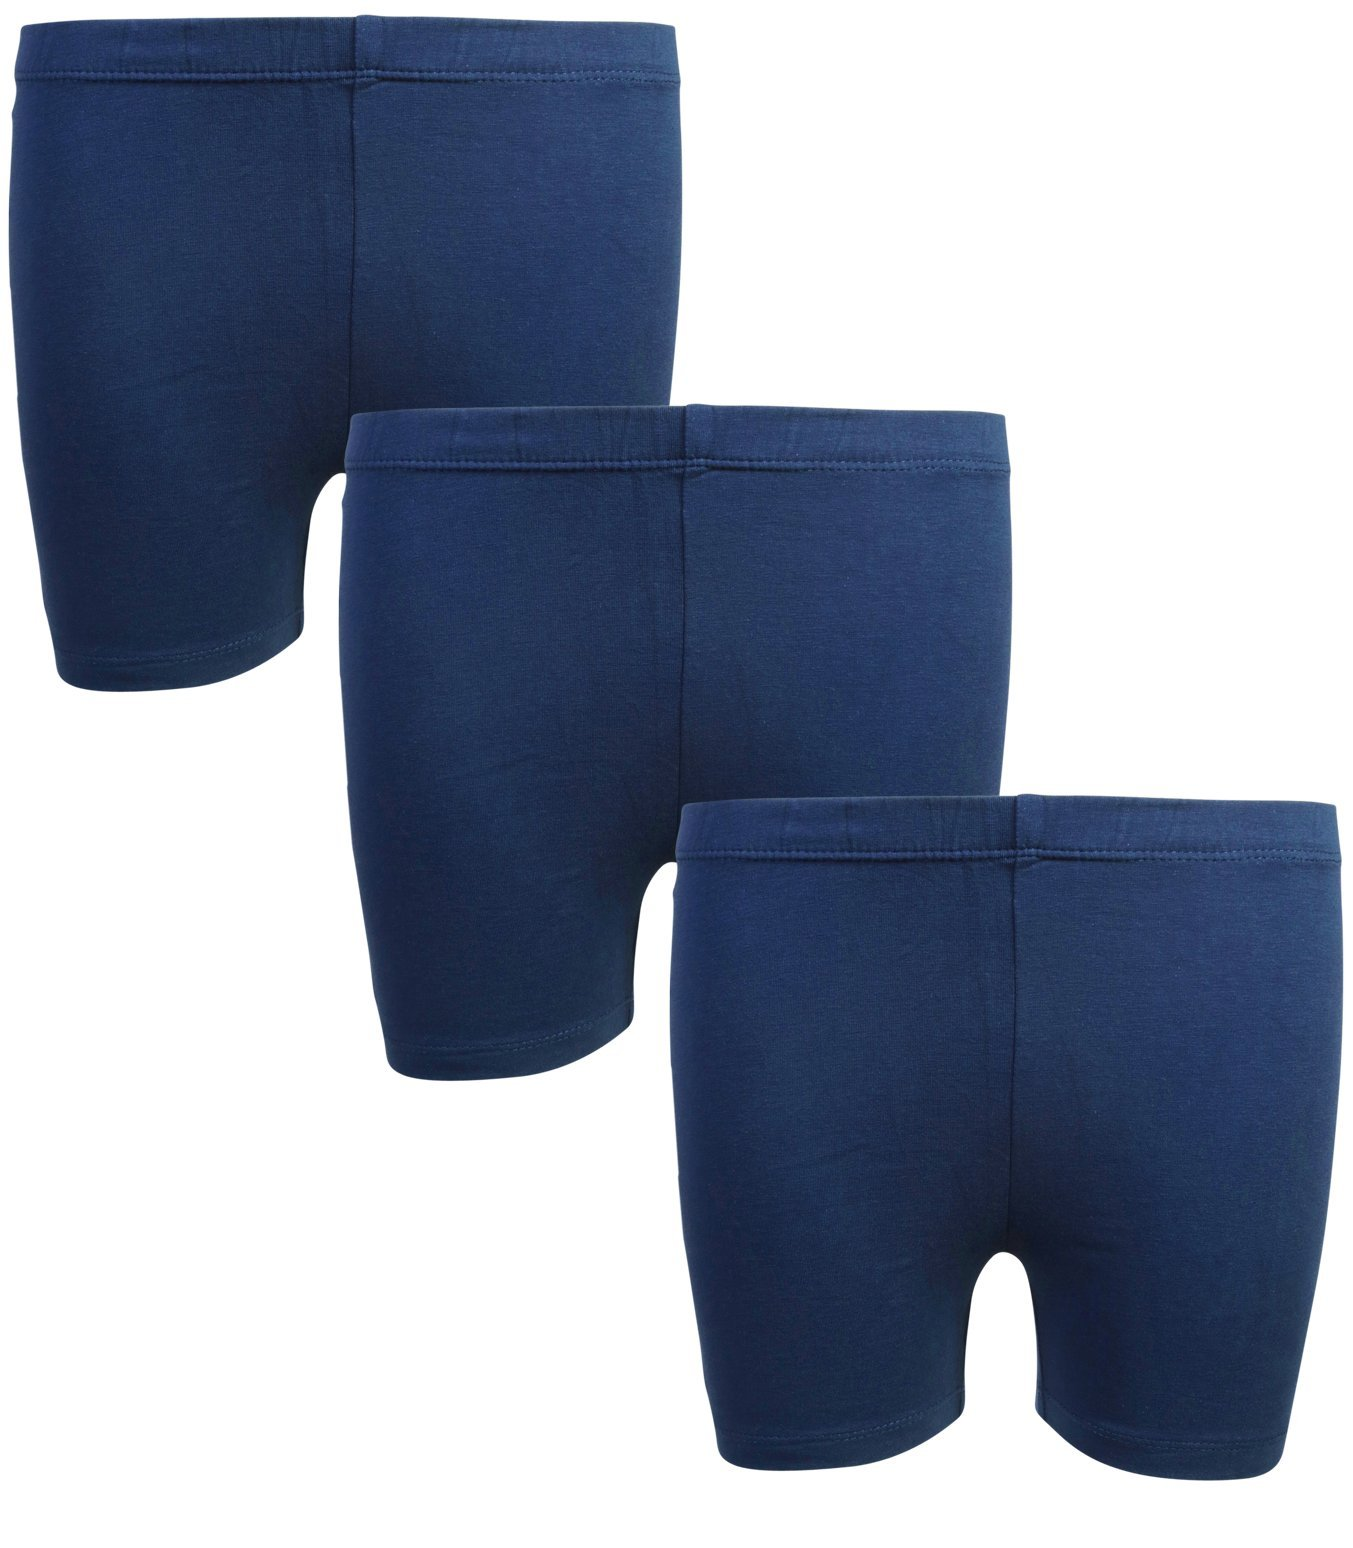 Beverly Hills Polo Club Girls School Uniform Bike Short (3 Pack), Navy, 6/6X'